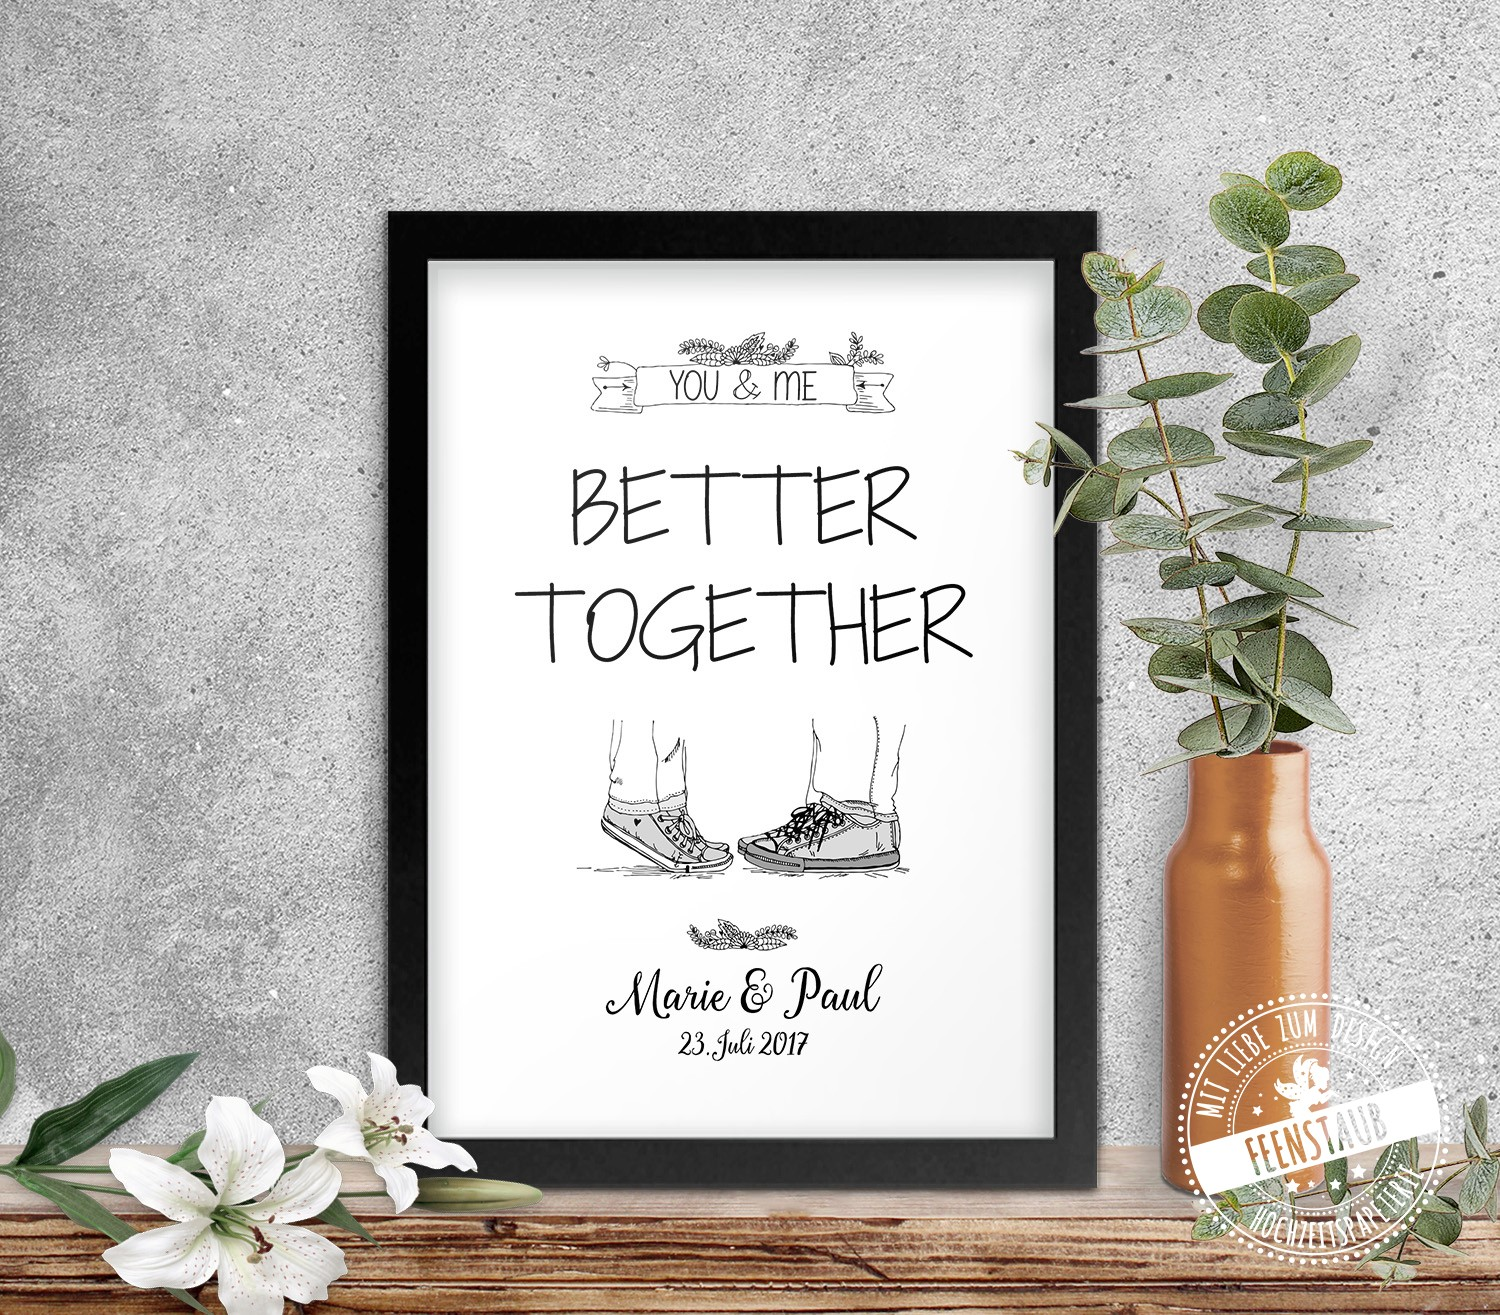 Feenstaub Print Poster You And Me Better Together Hochzeitsgeschenk